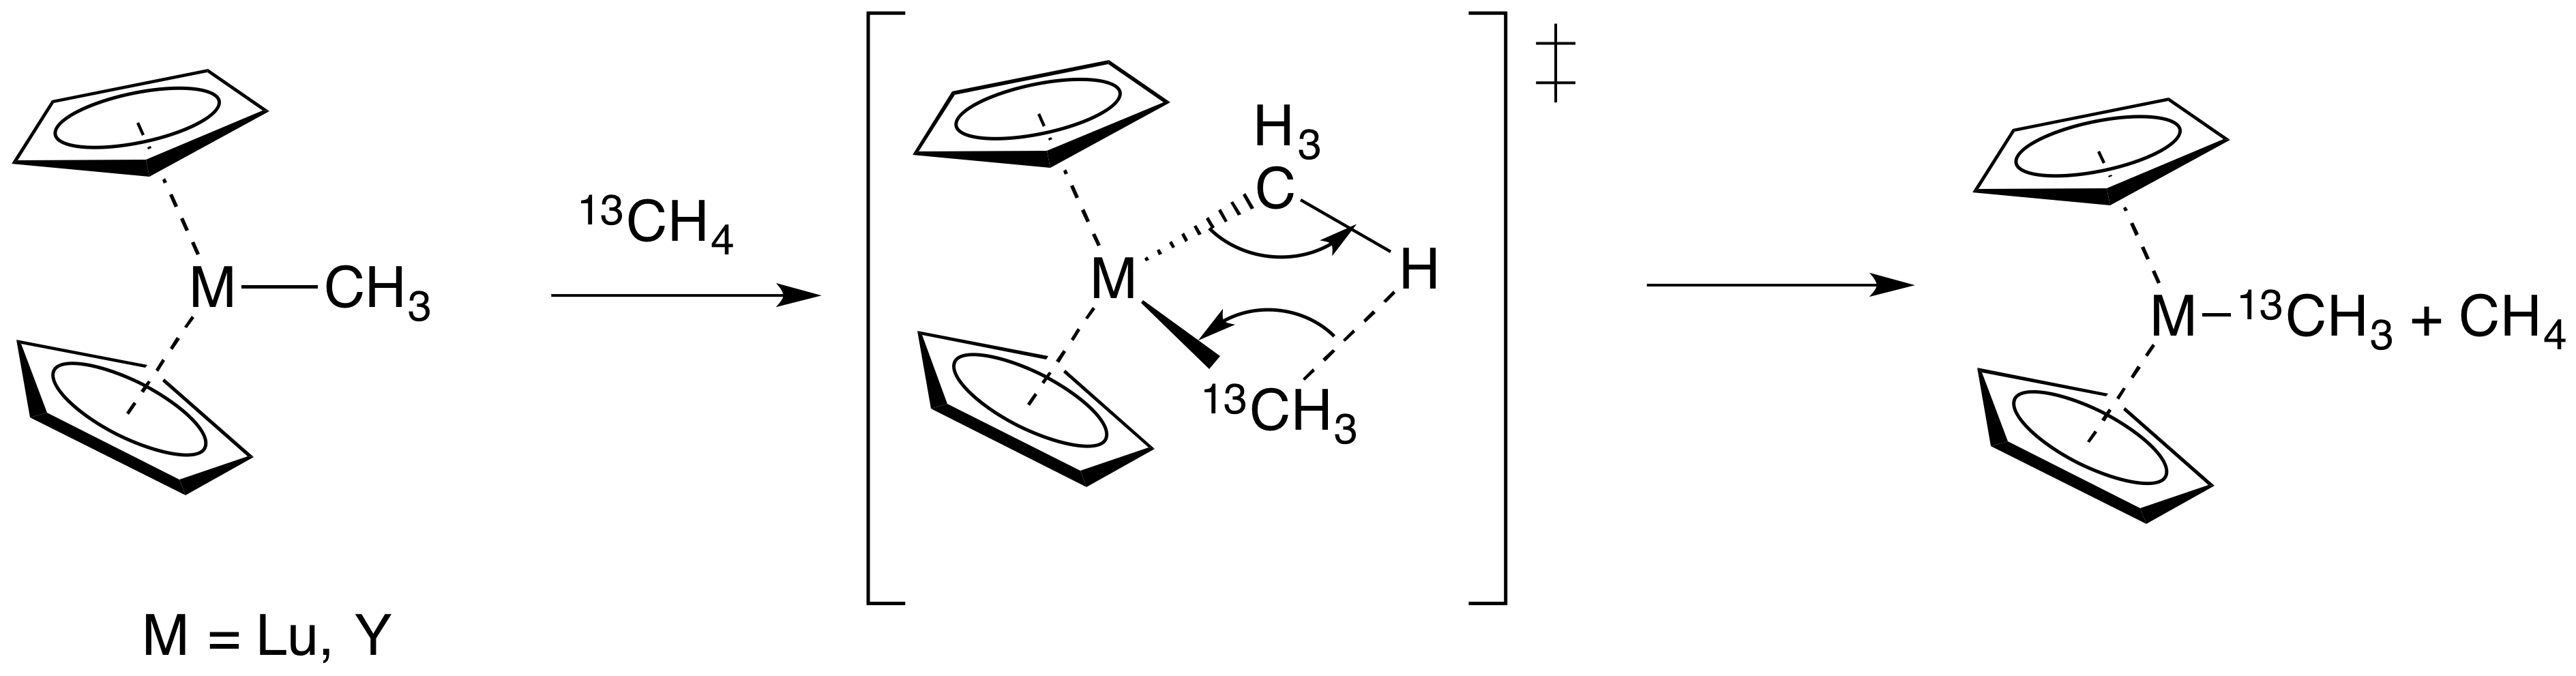 Sigma bond metathesis